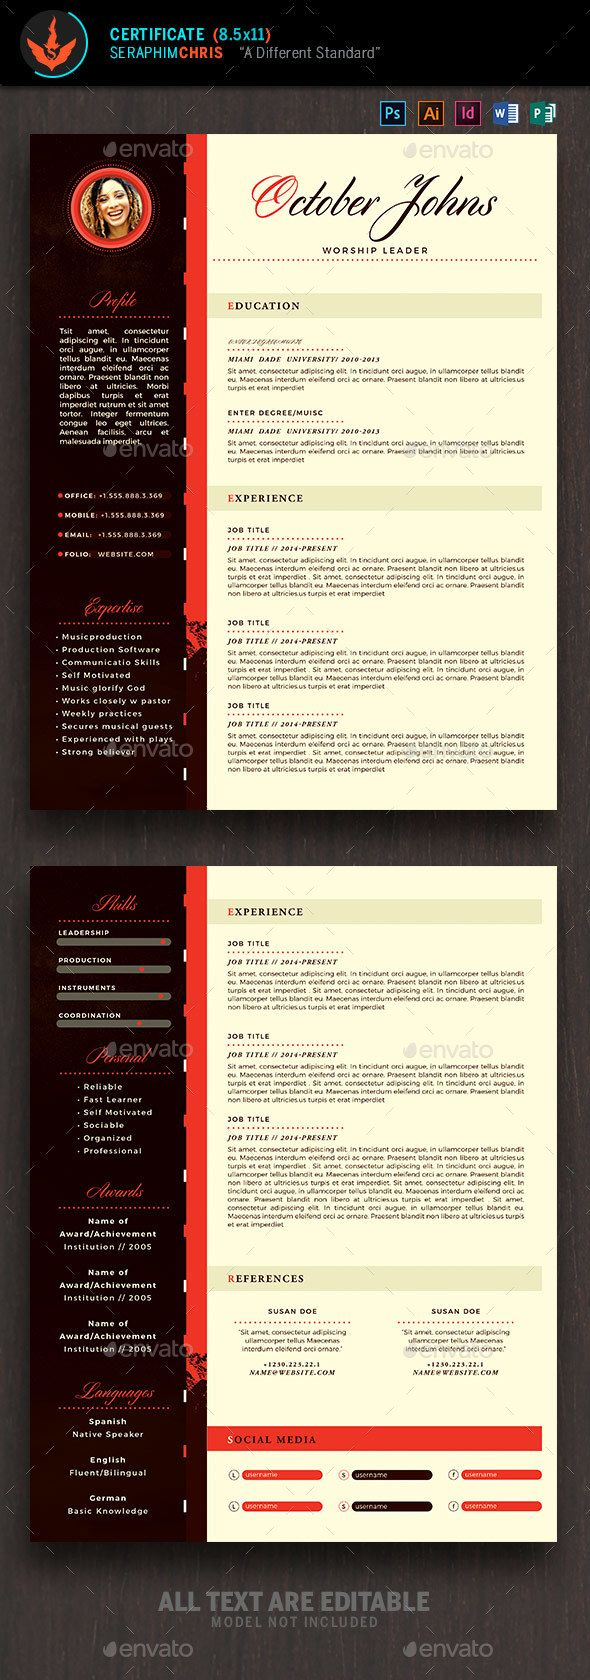 King Modern Church Resume Template 1563 best